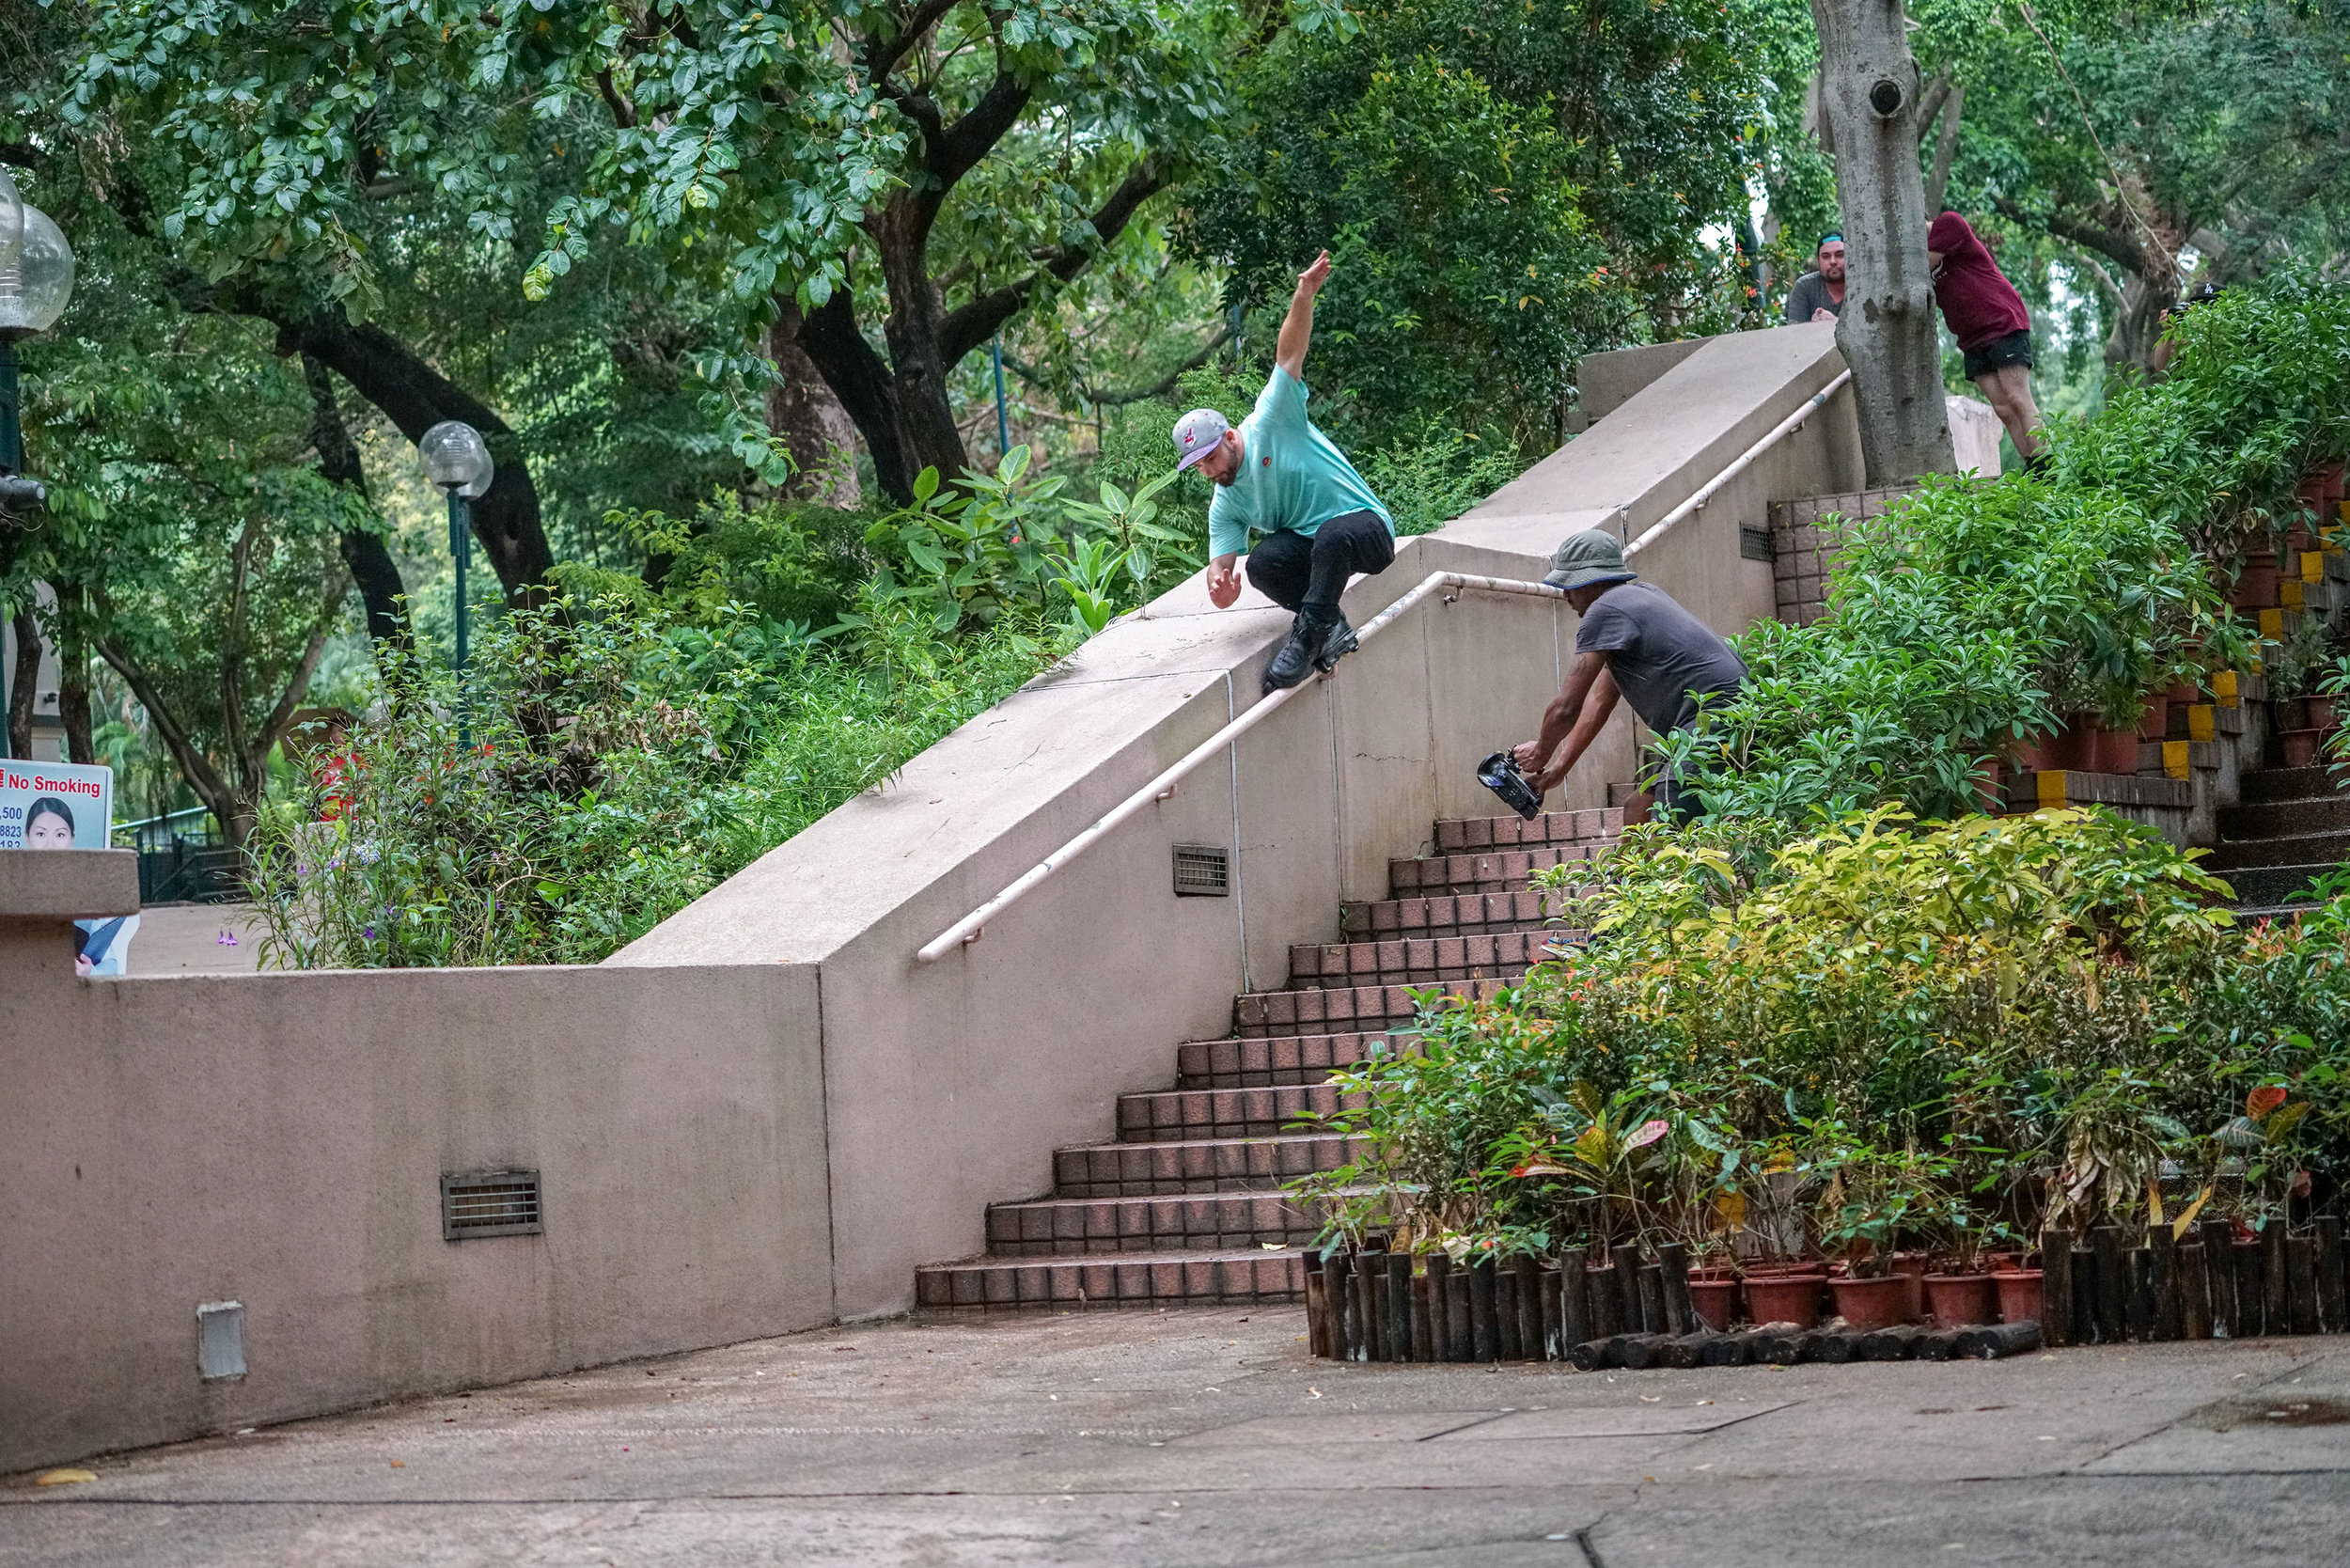 X Grind through the kink - photo by Kyle Strauss